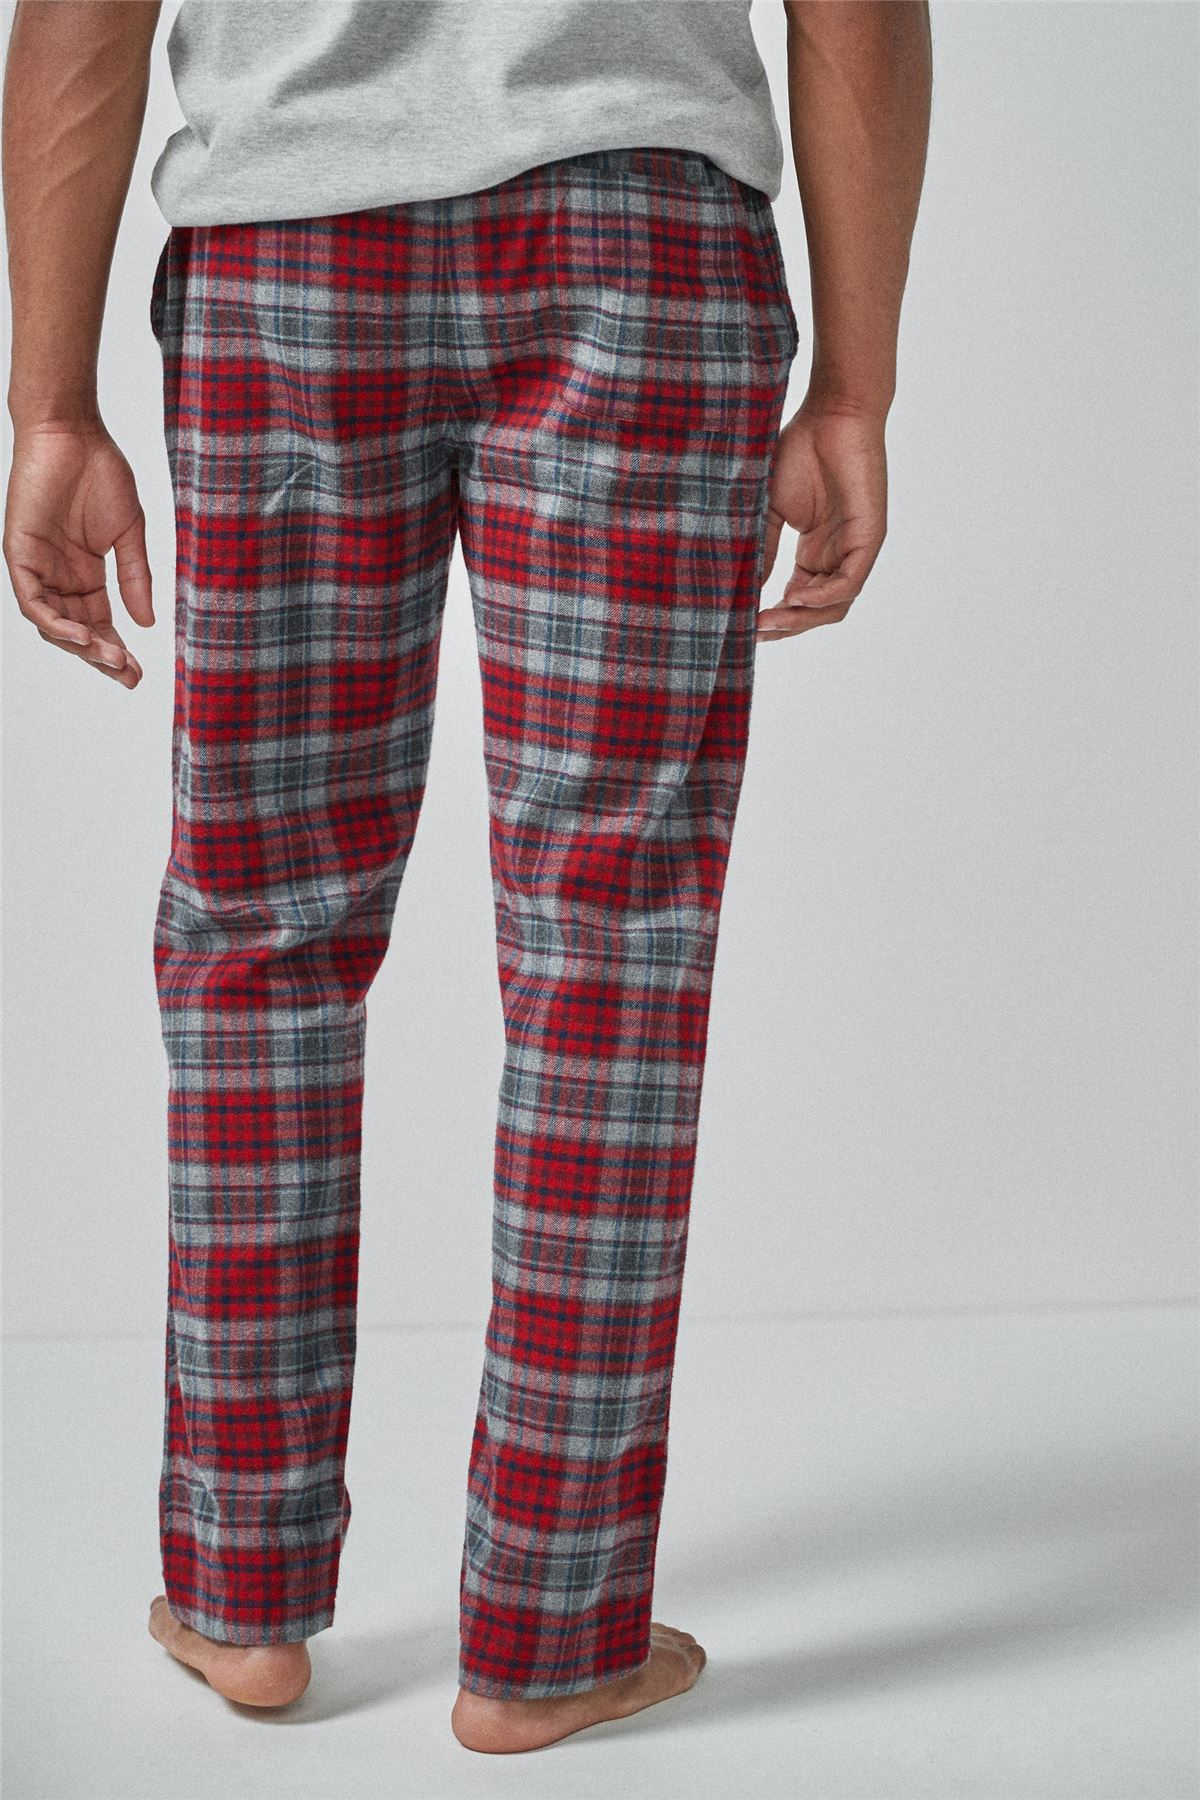 Mens NEXT Check Brushed Woven Pyjama Bottoms 100/% Cotton PJ/'s Flannel Trousers